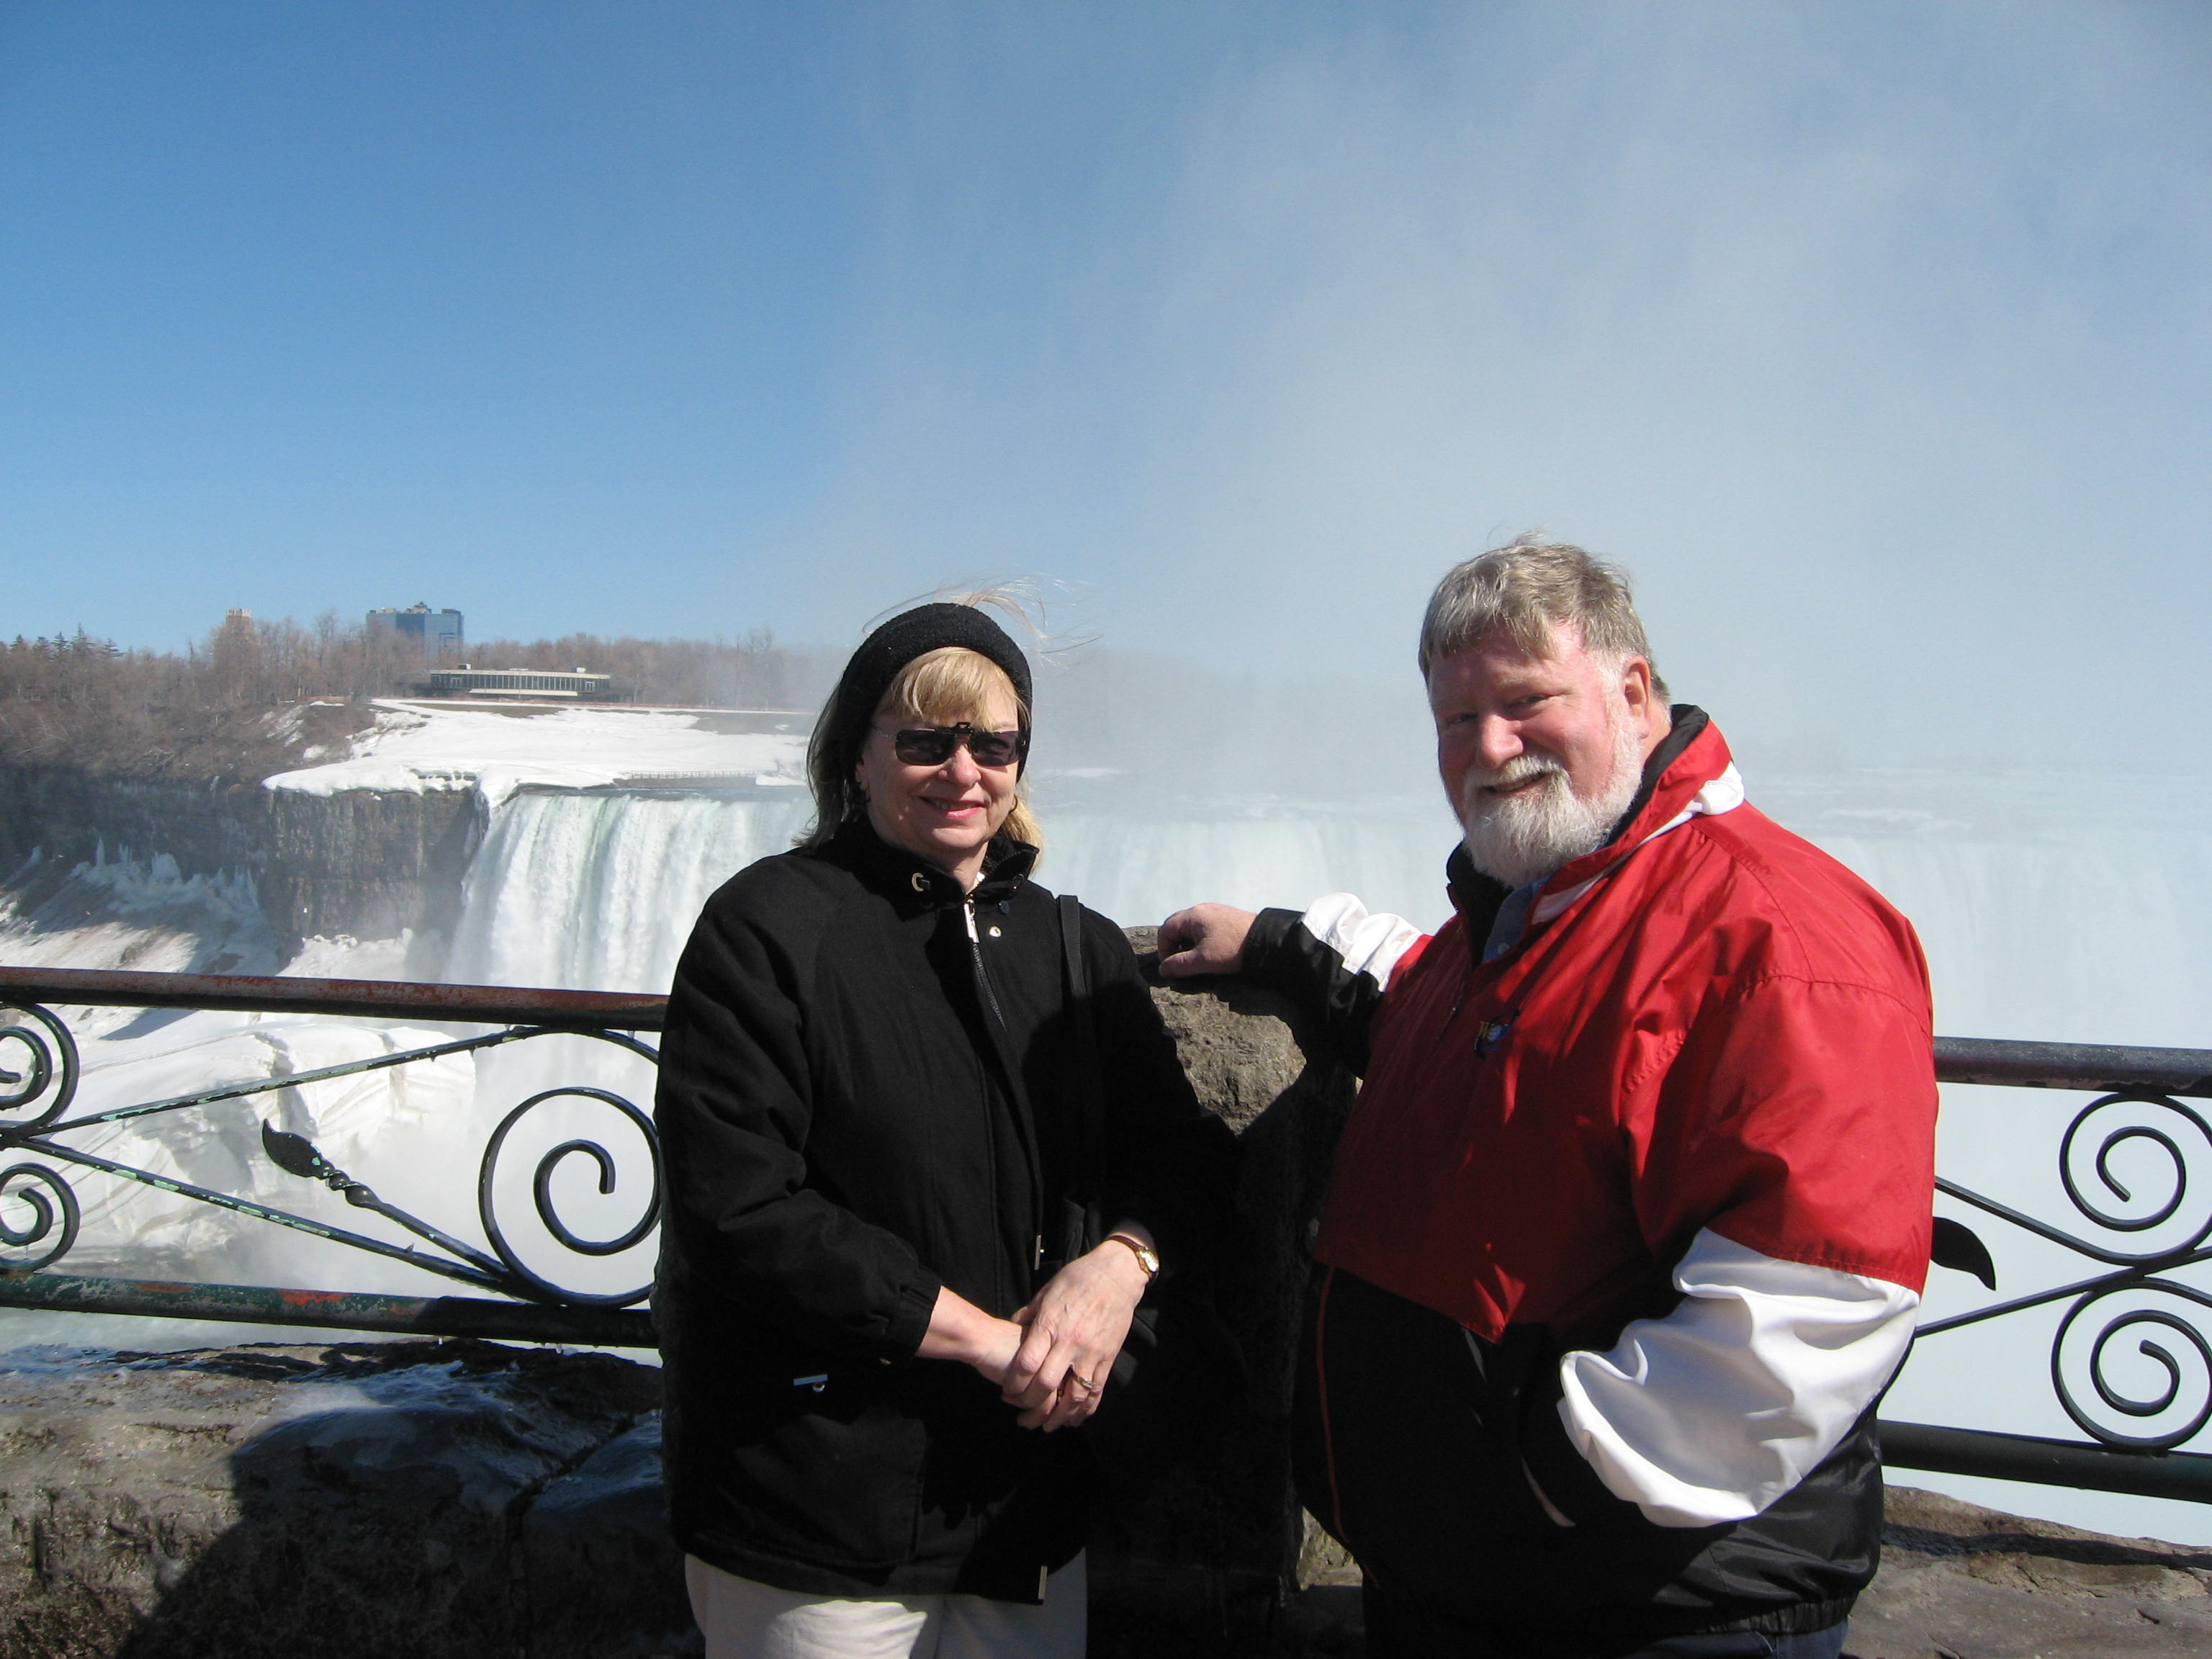 Here we are by the Canadian Falls, also called the Horseshoe Falls. The water creates a mist in the air that, in cold weather, coats nearby trees with ice..